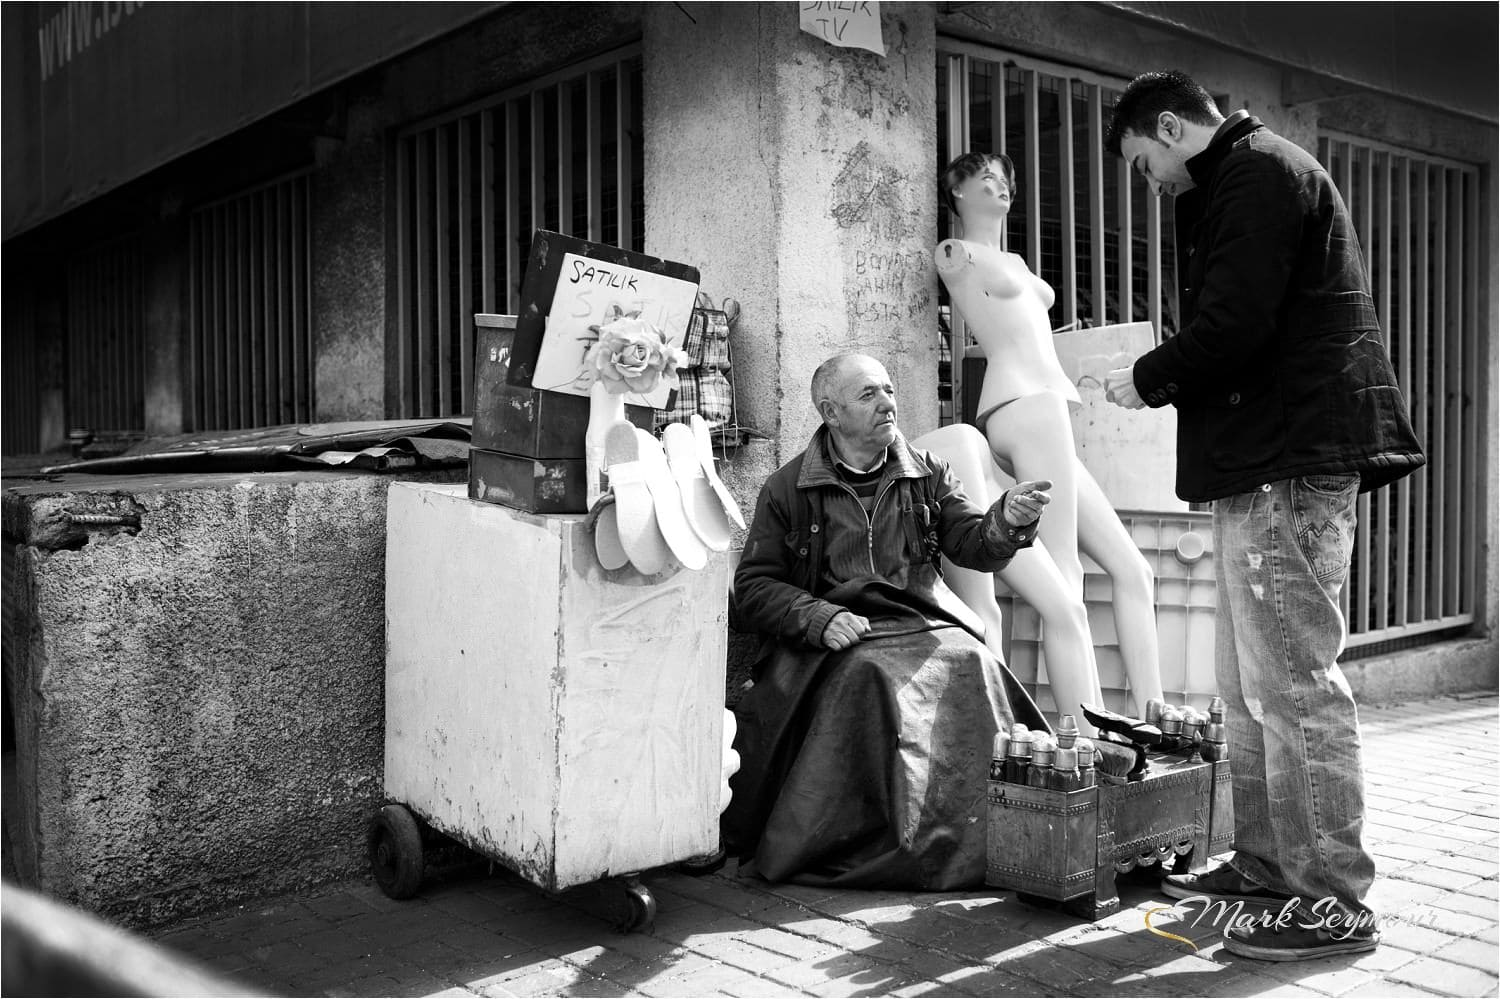 Street photograph in Istanbul